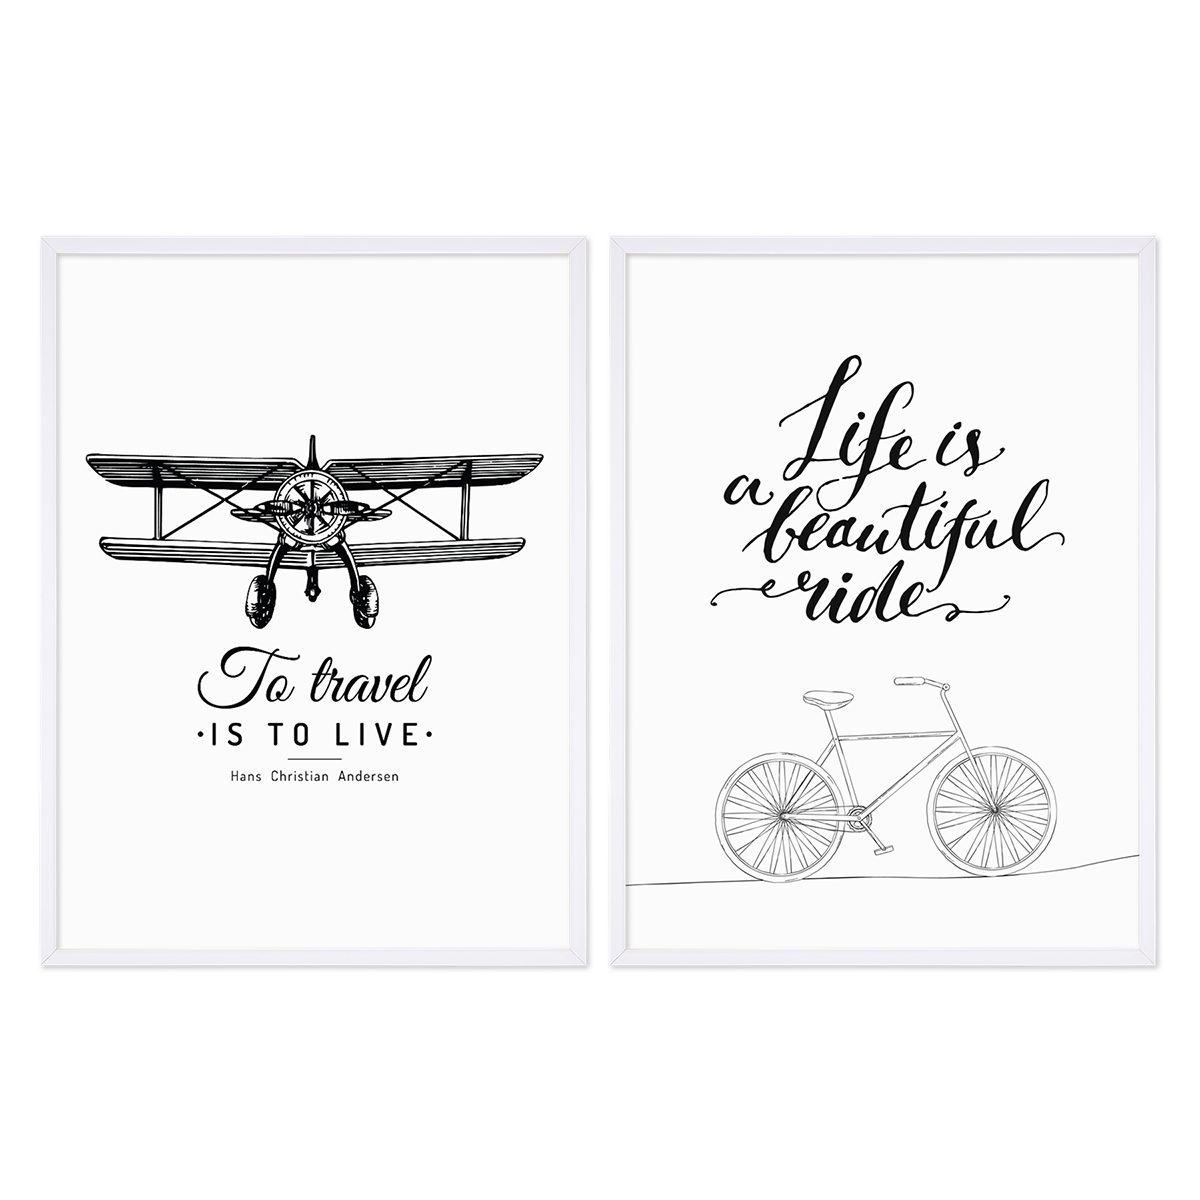 2er set schwarz weiss poster mit bilderrahmen weiss 30x40 cm typografie spruch reisen life. Black Bedroom Furniture Sets. Home Design Ideas